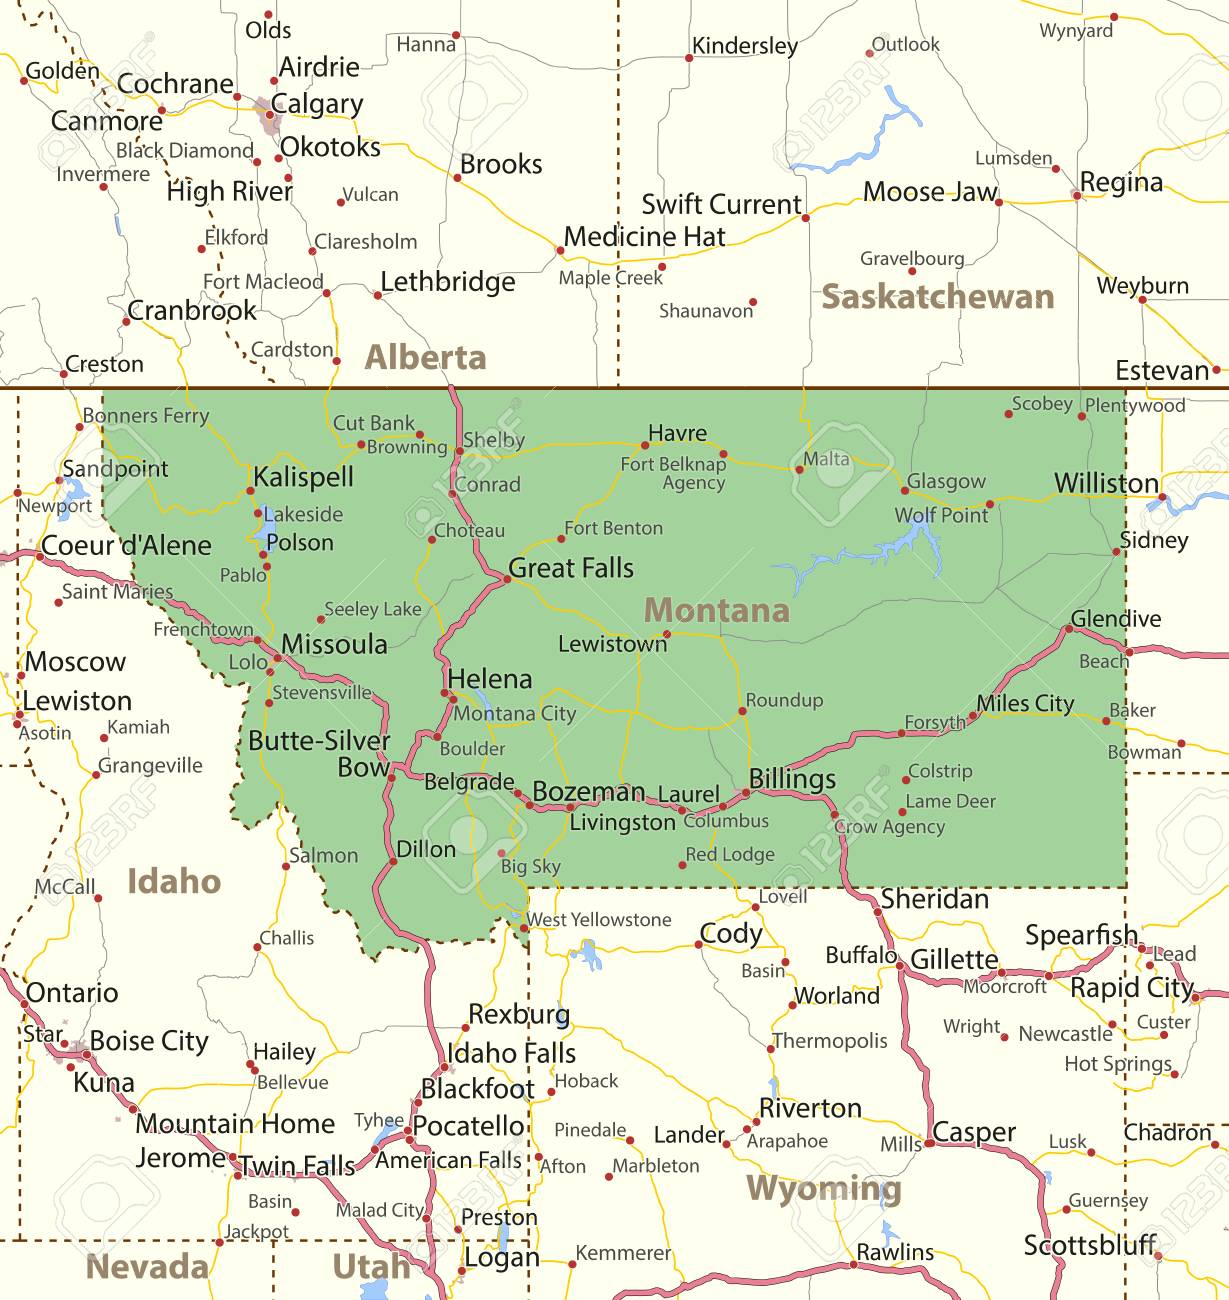 Map of Montana. Shows state borders, urban areas, place names,..